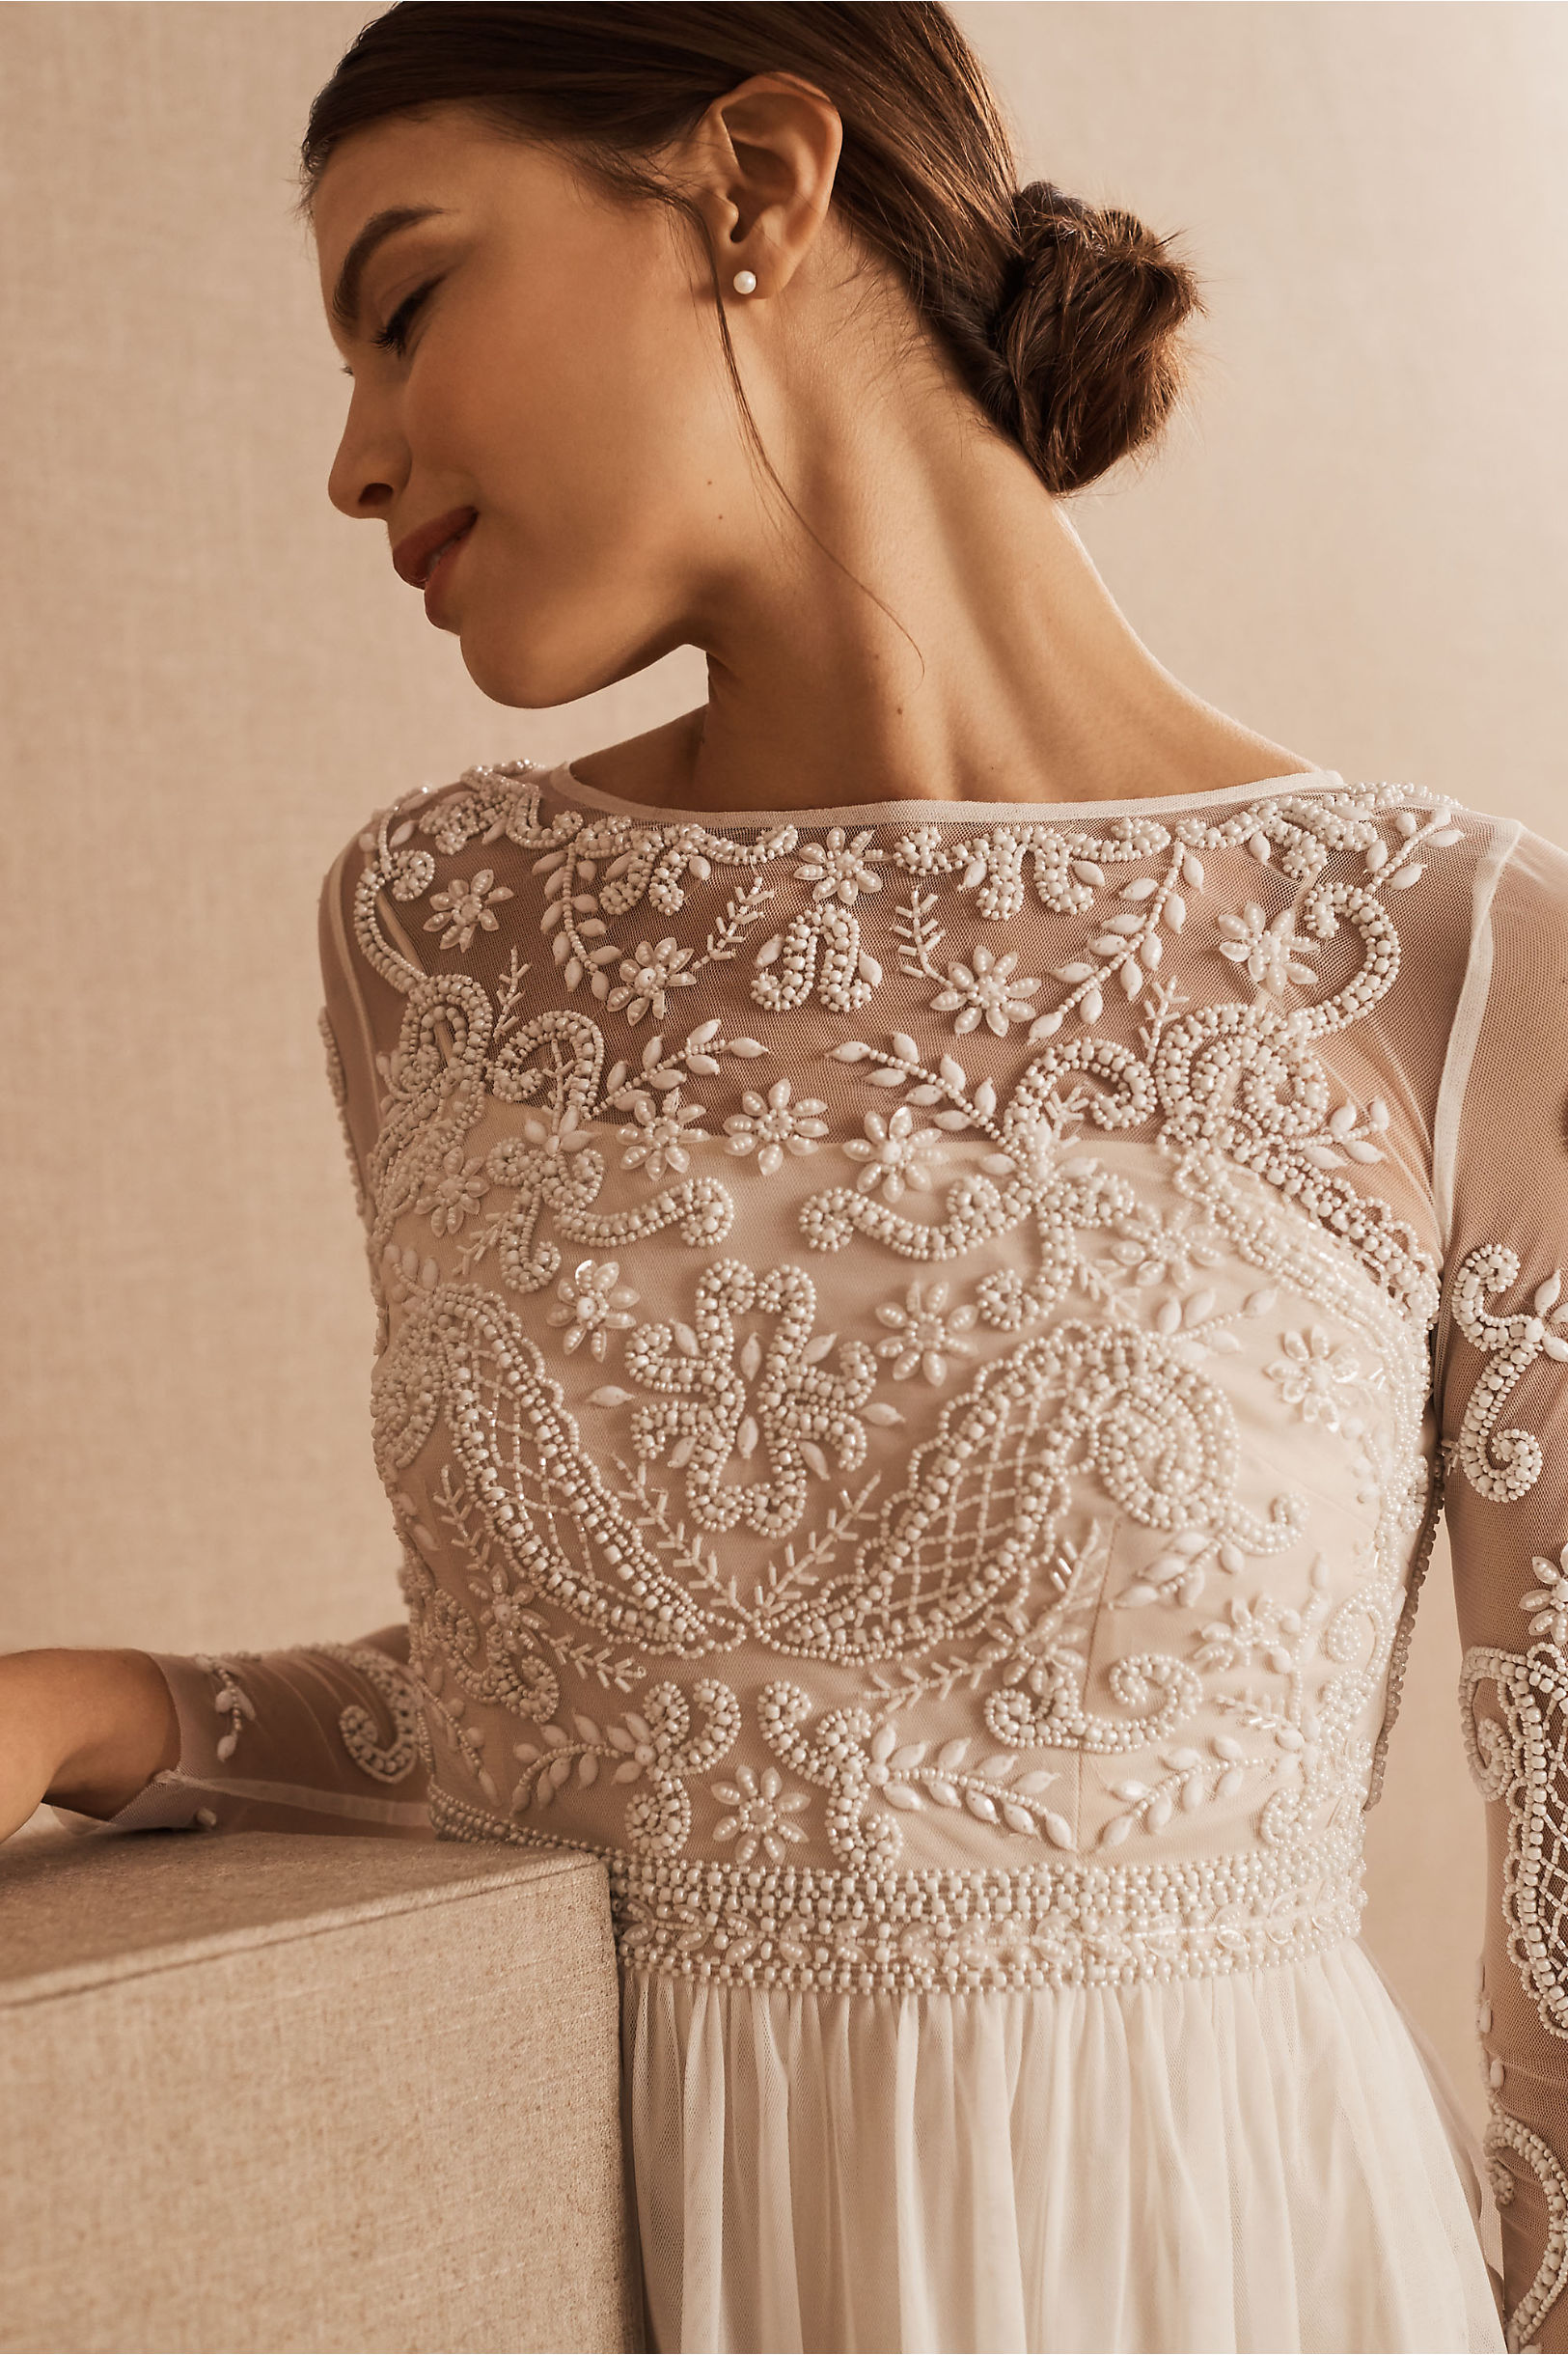 Sinclair Dress Ivory/Champagne in Bride | BHLDN